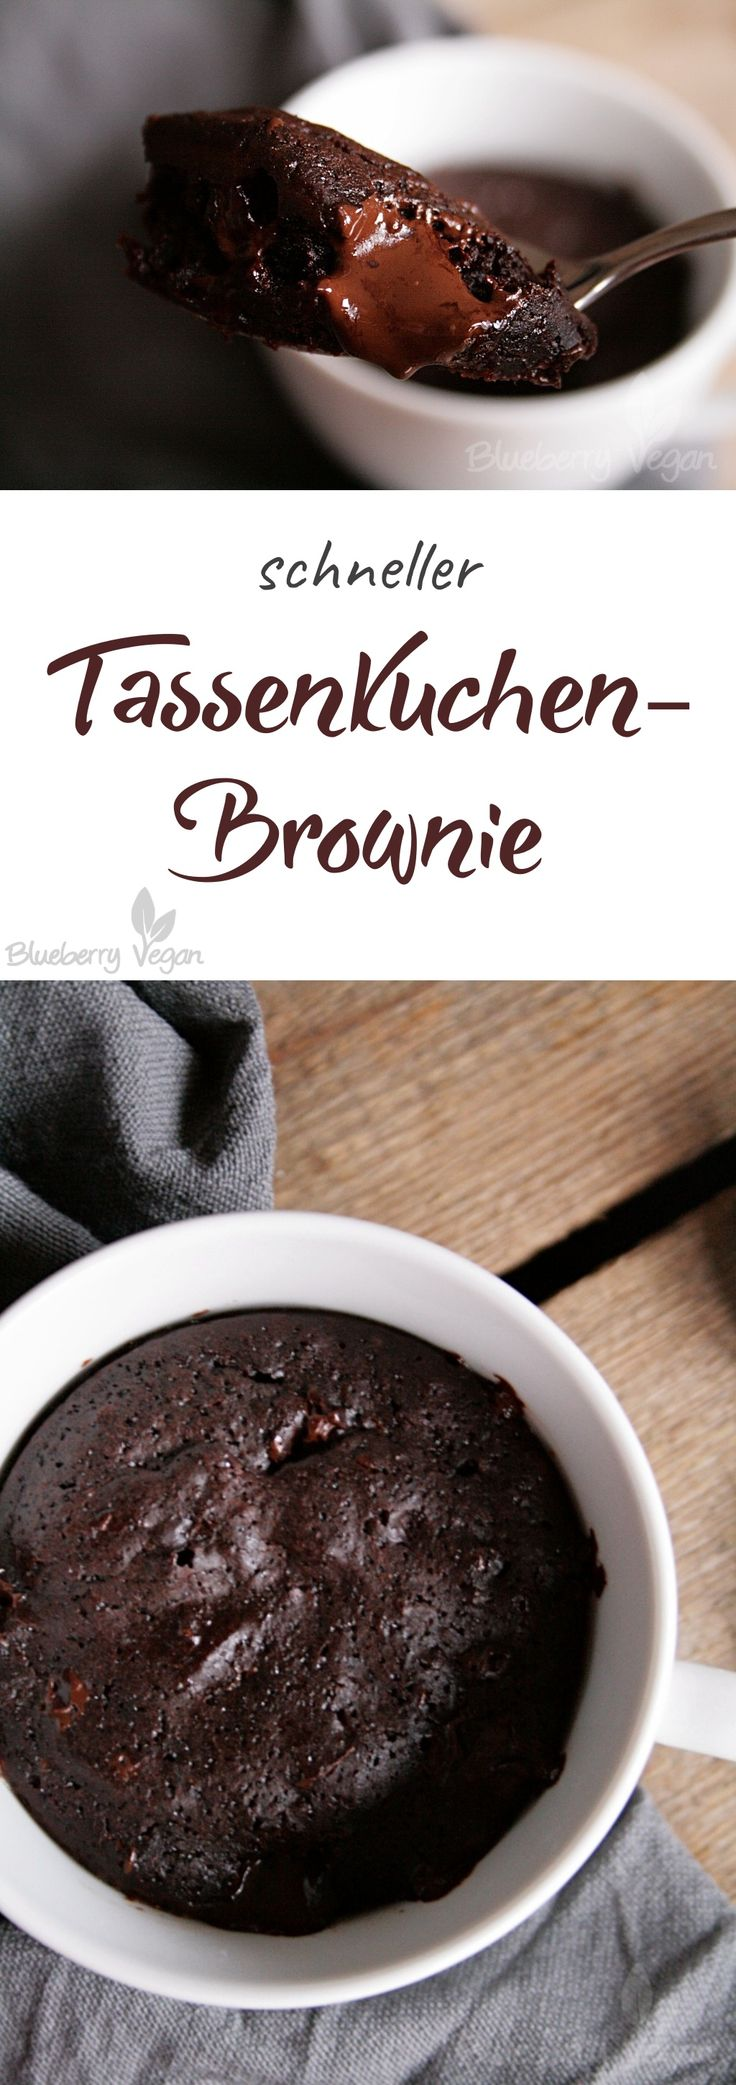 Tassenkuchen-Brownie